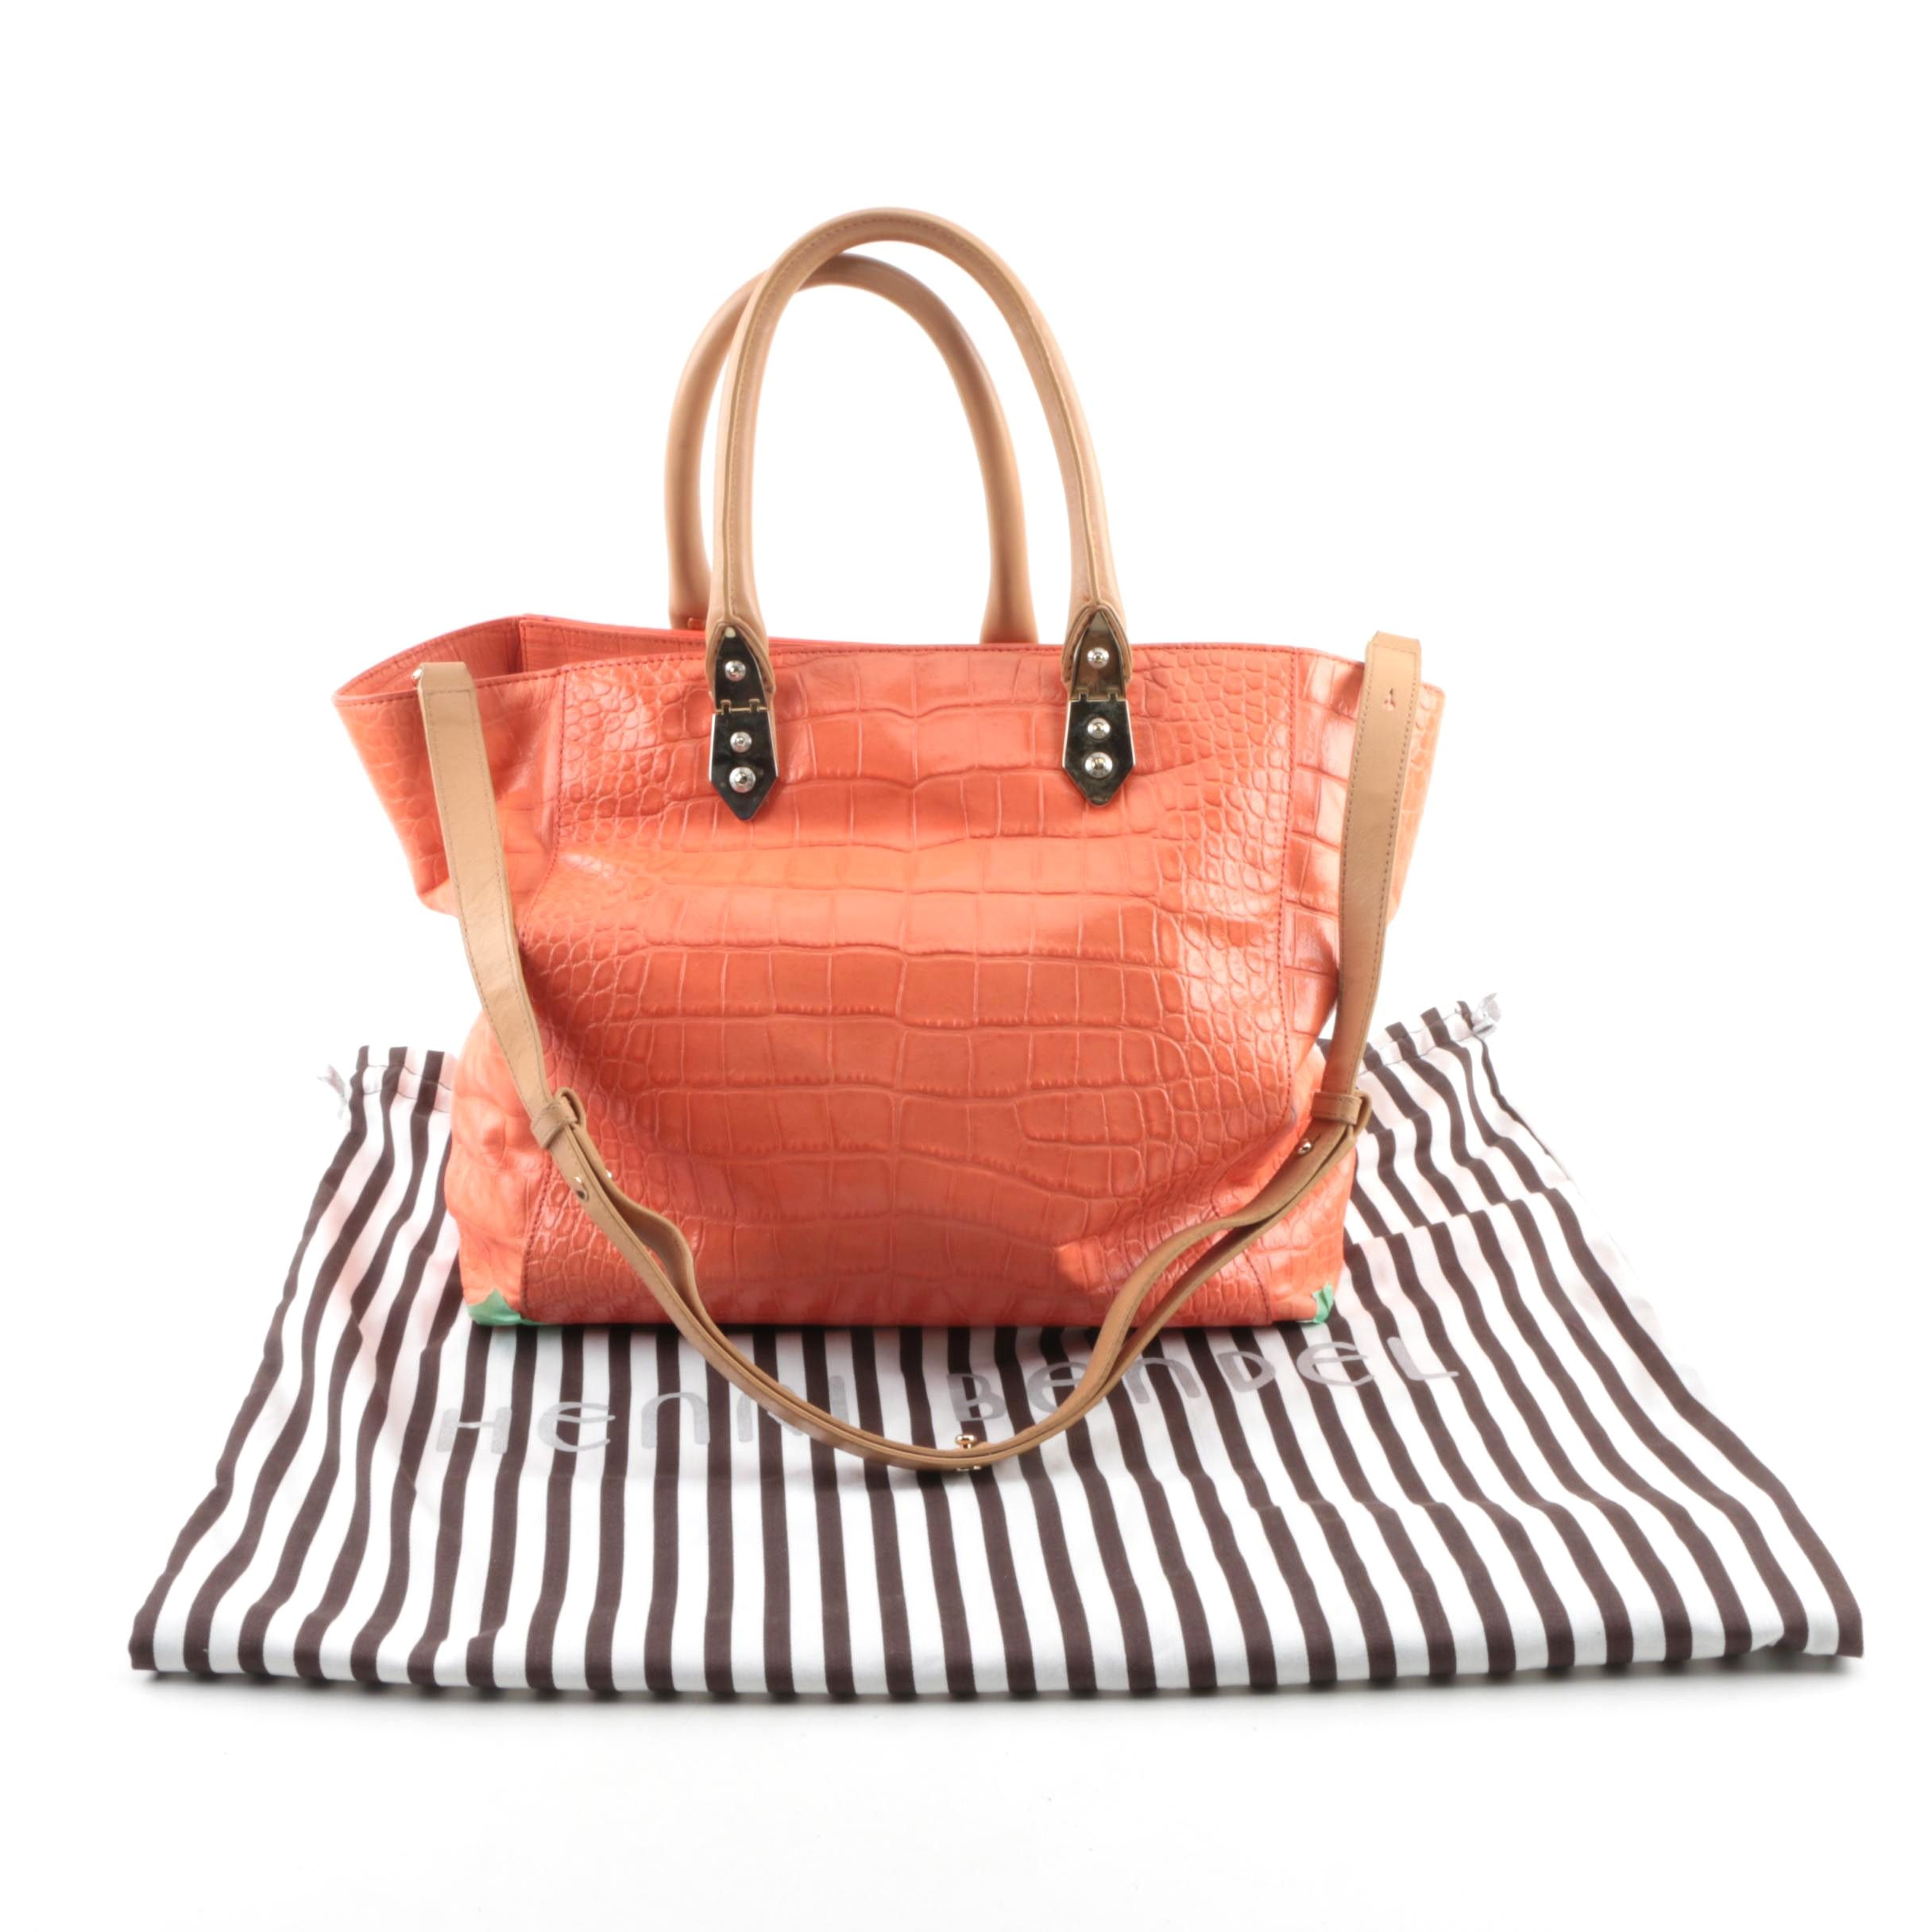 Henri Bendel Alligator Embossed Orange and Tan Ombre Leather Convertible Satchel